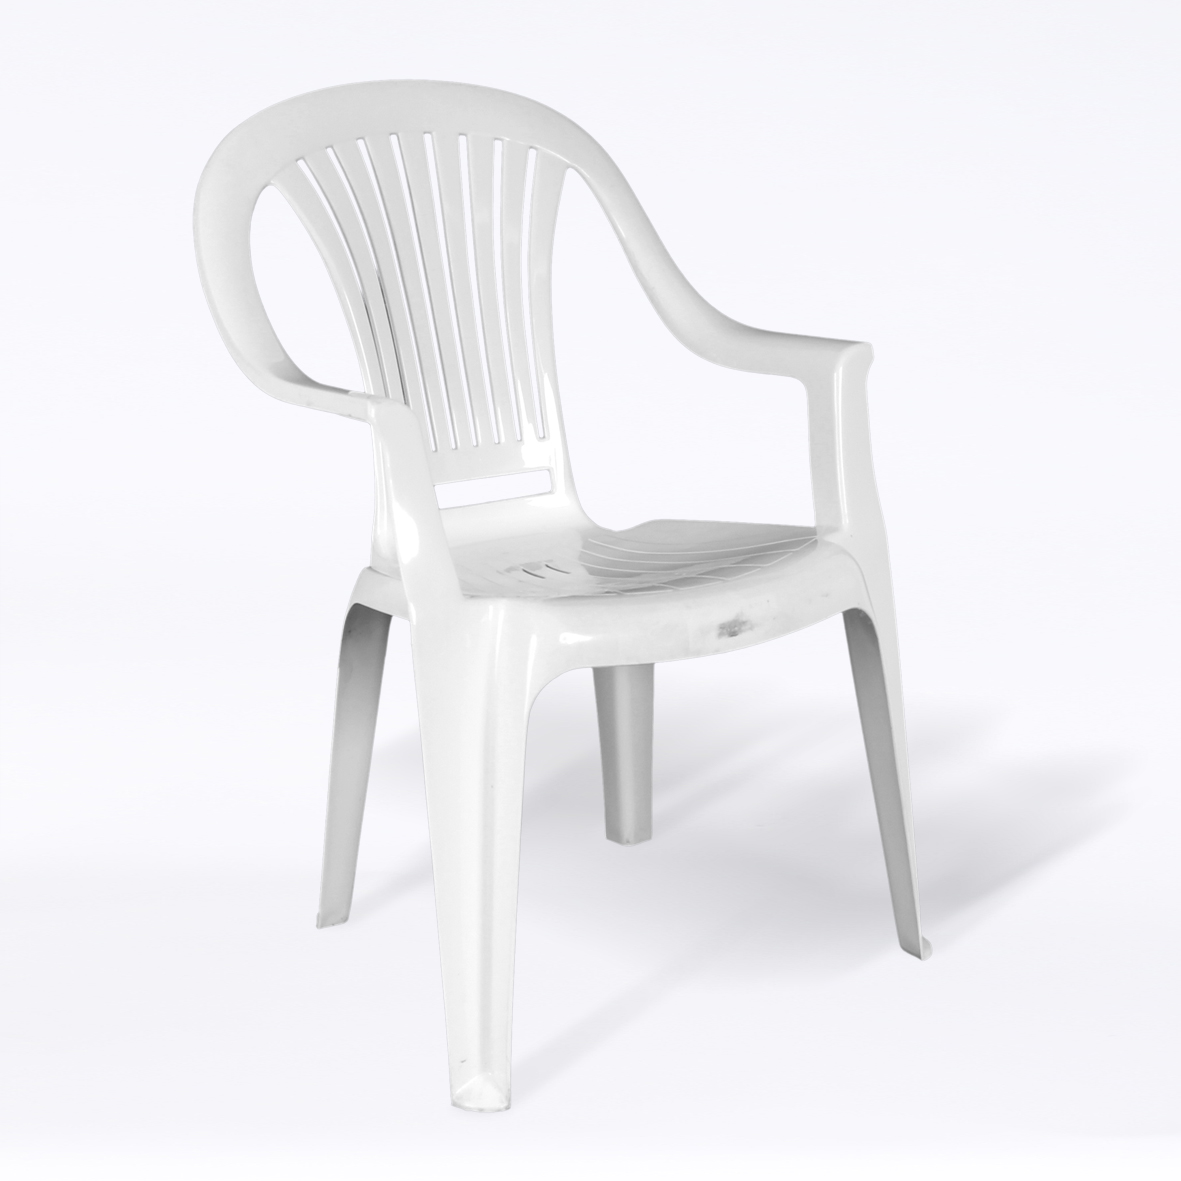 Plastic Outdoor Chair Hire A White Plastic Patio Chair Chairs Furniture And